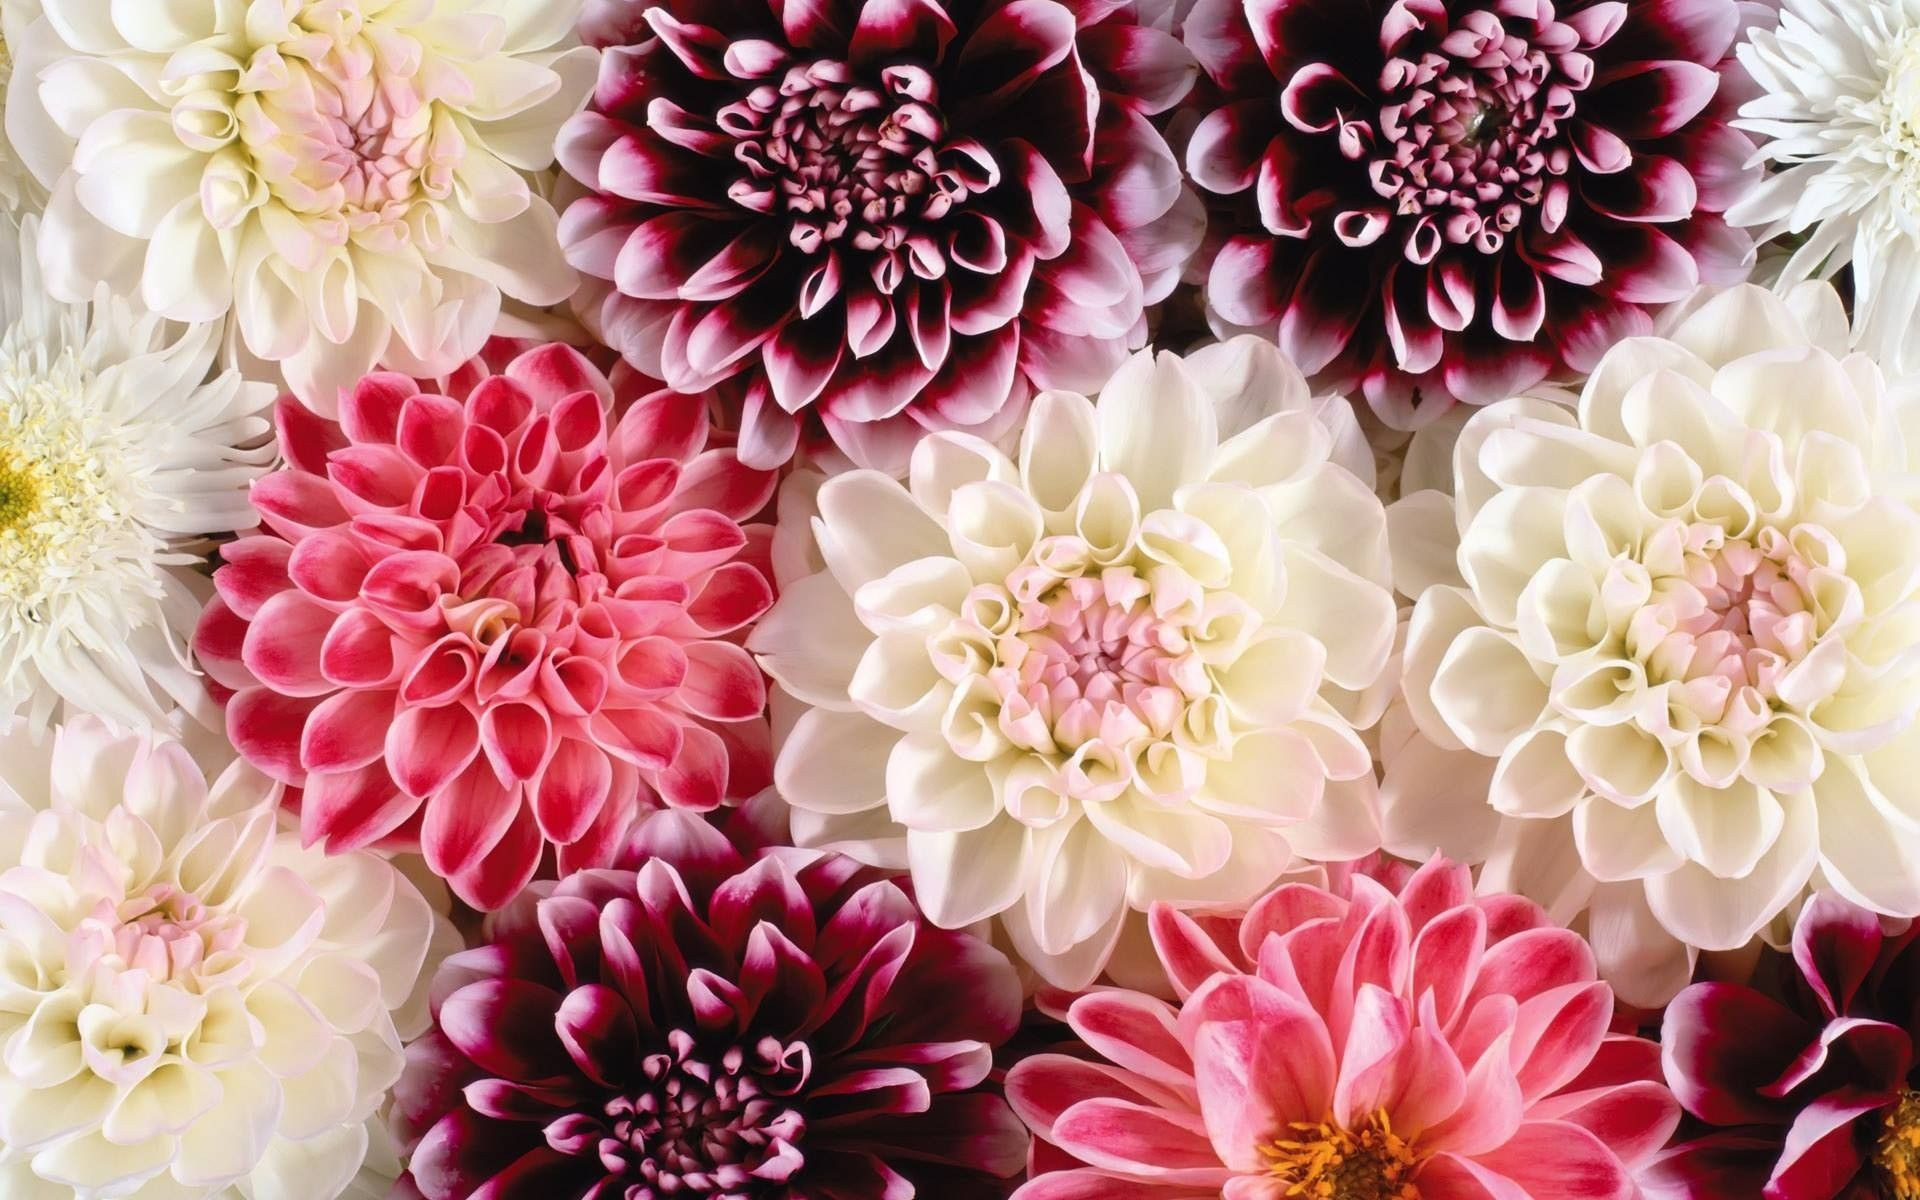 Pin By Kirena Lopez On Wallpaper Pinterest Flowers Garden